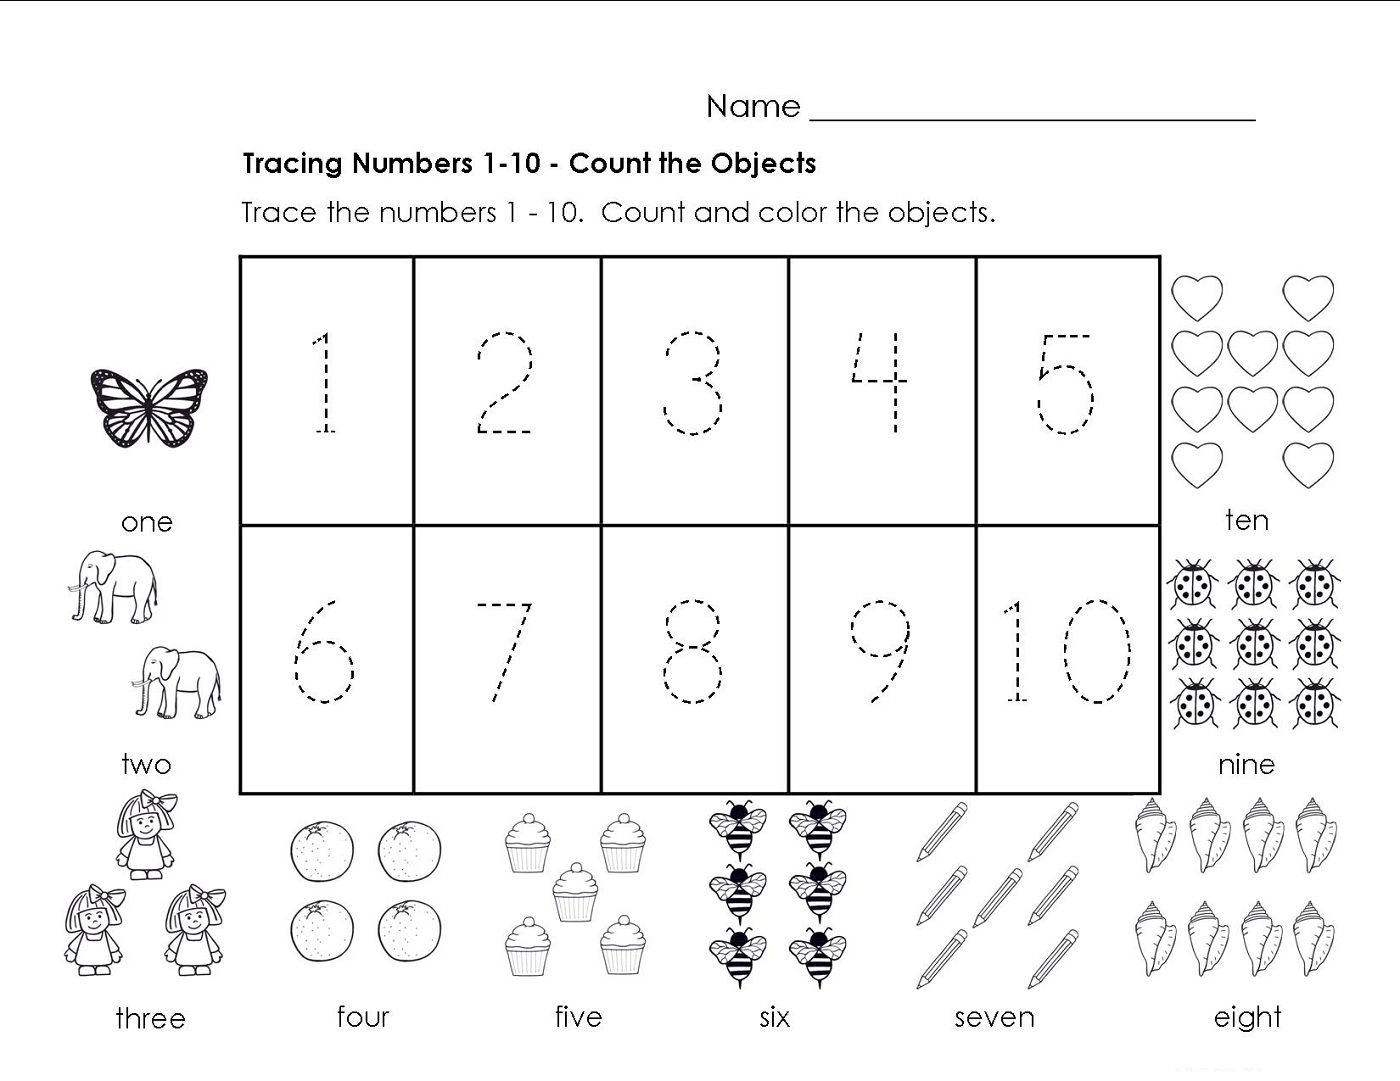 Traceable Numbers 1-10 Worksheets To Print